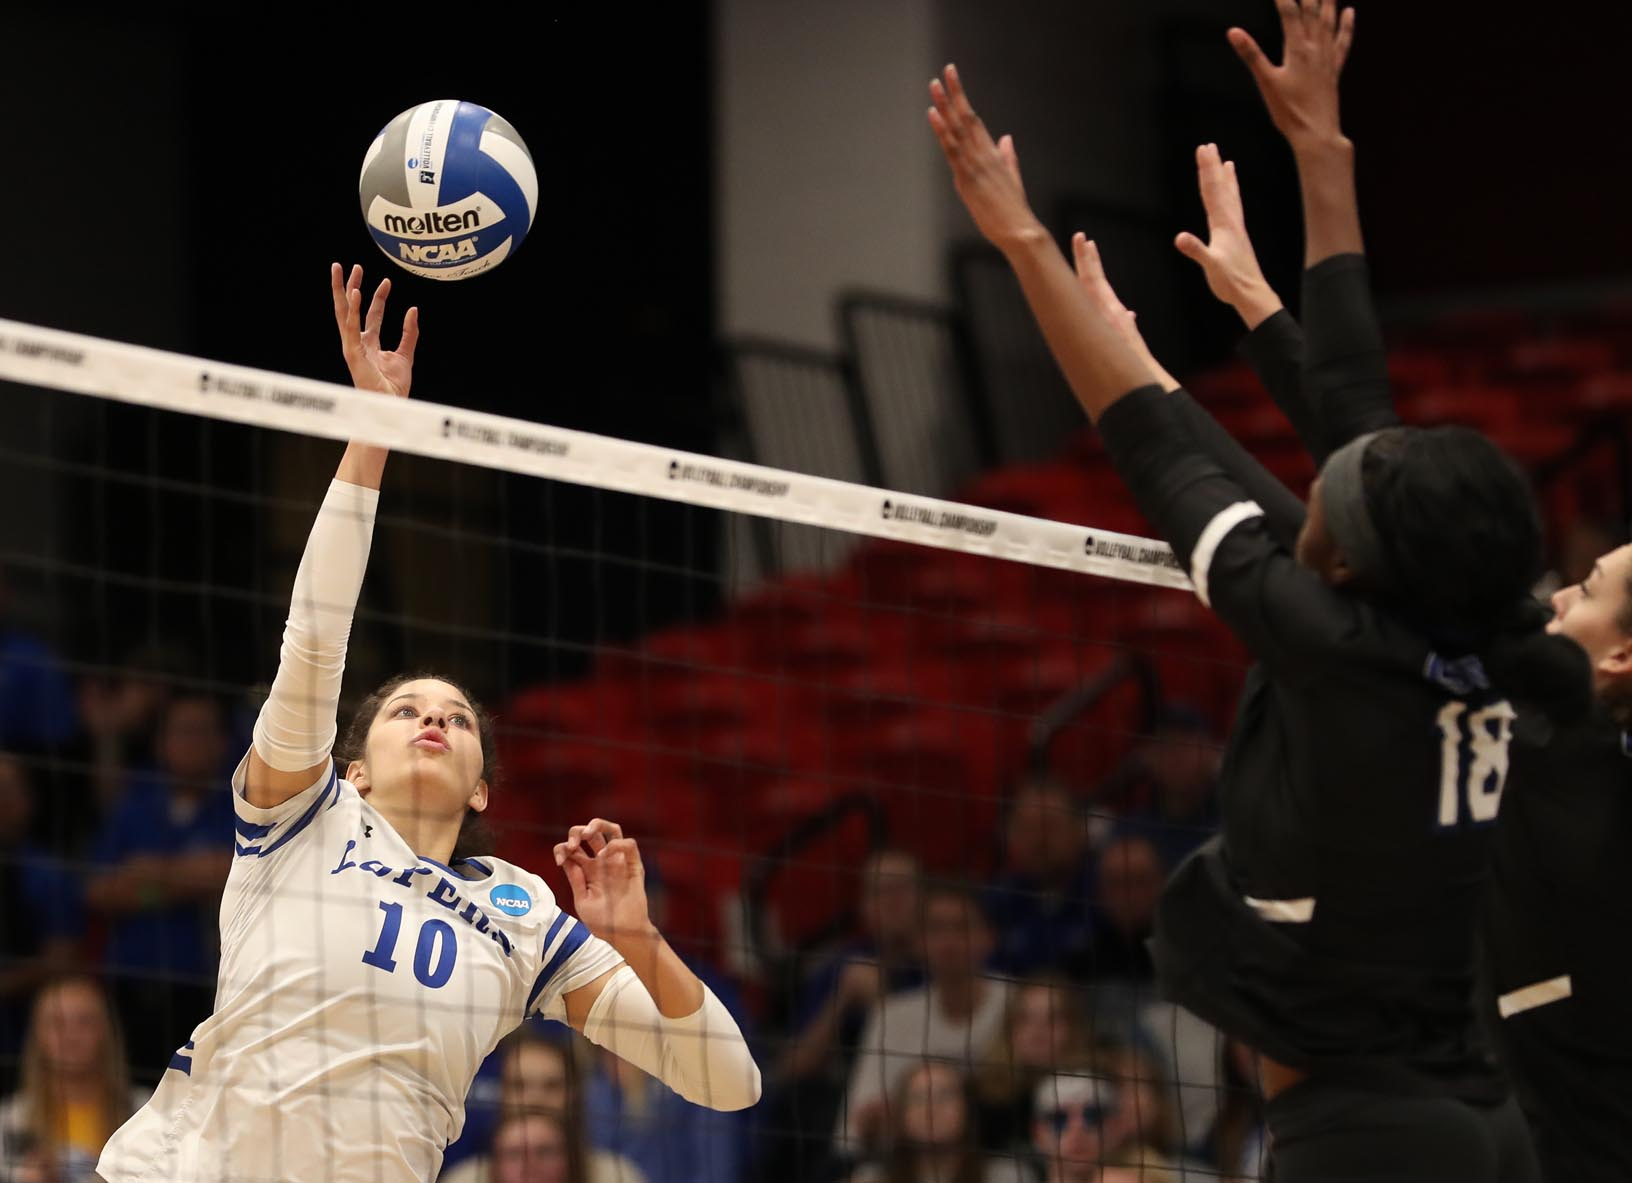 Julianne Jackson (10) is one of four seniors who finished their UNK volleyball careers during Saturday's NCAA Division II national championship match in Denver. (Photos by Corbey R. Dorsey, UNK Communications)